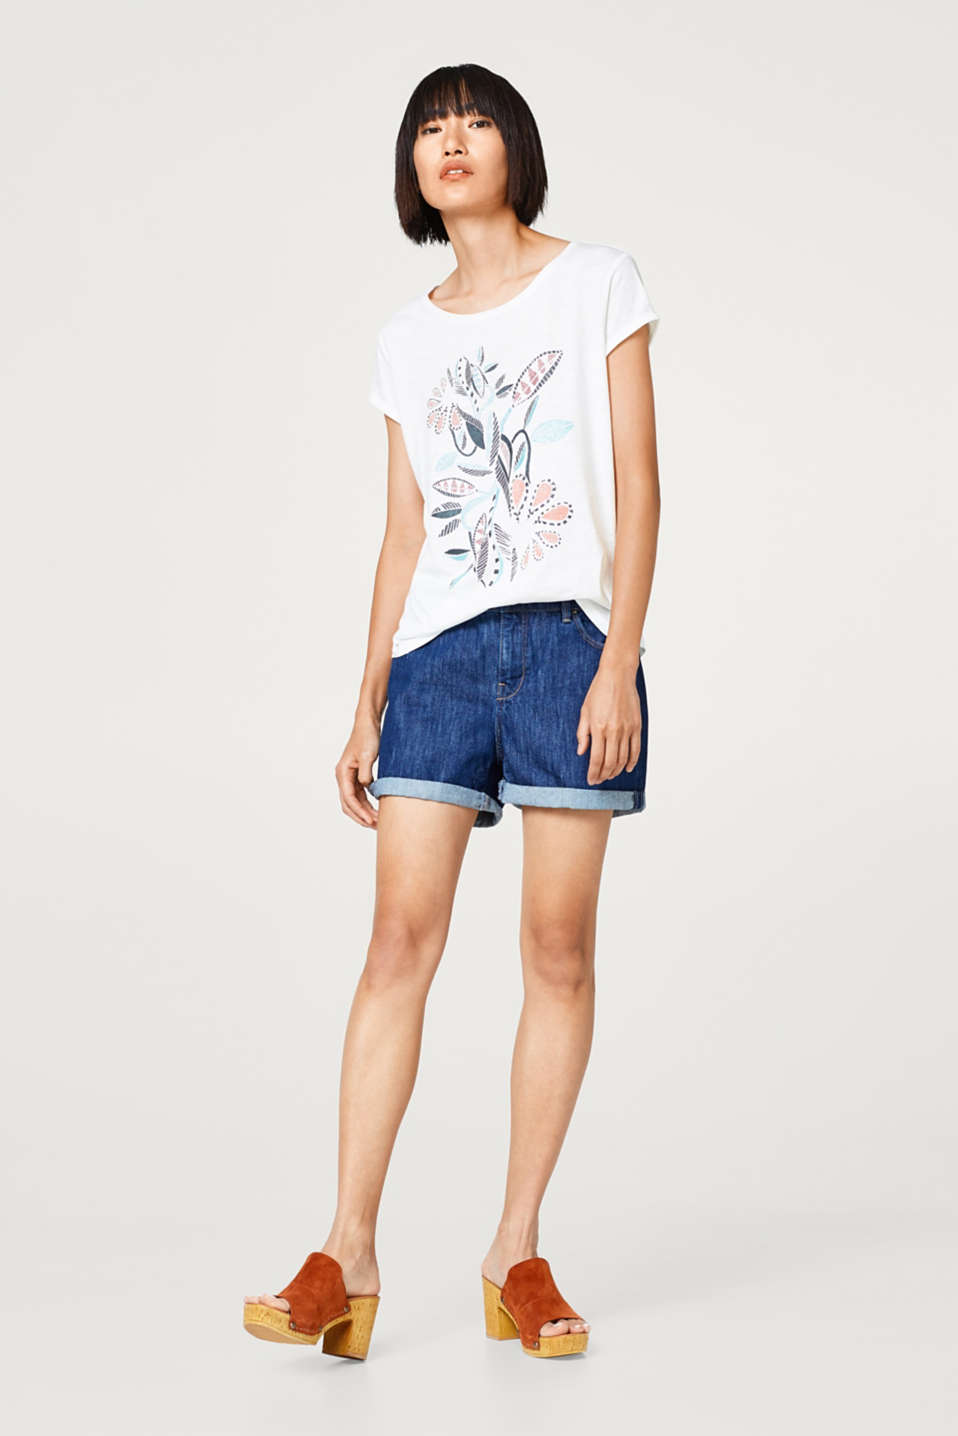 Cotton T-shirt with floral artwork